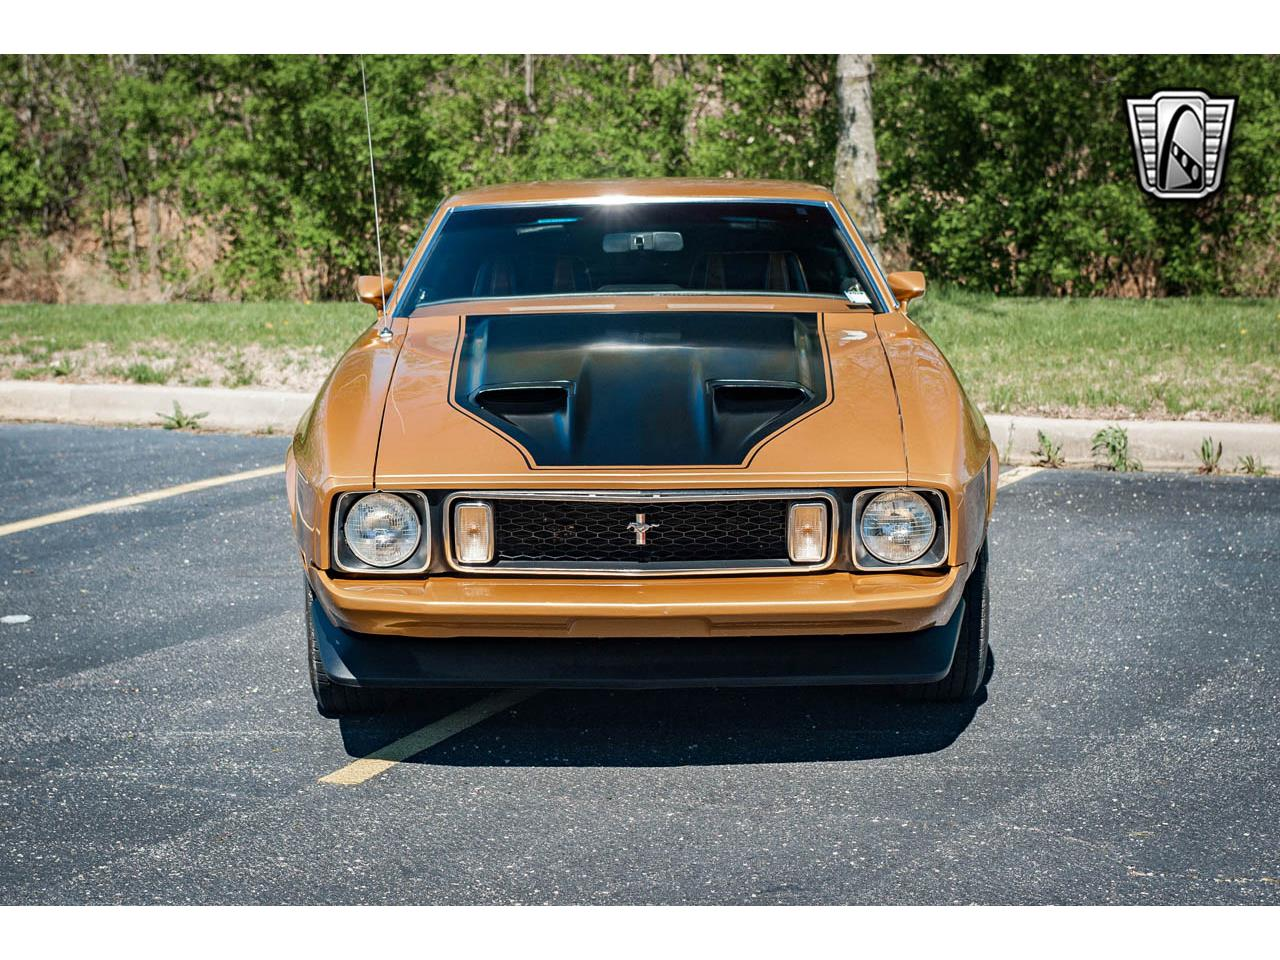 Large Picture of '73 Ford Mustang located in O'Fallon Illinois - $34,500.00 - QB8T